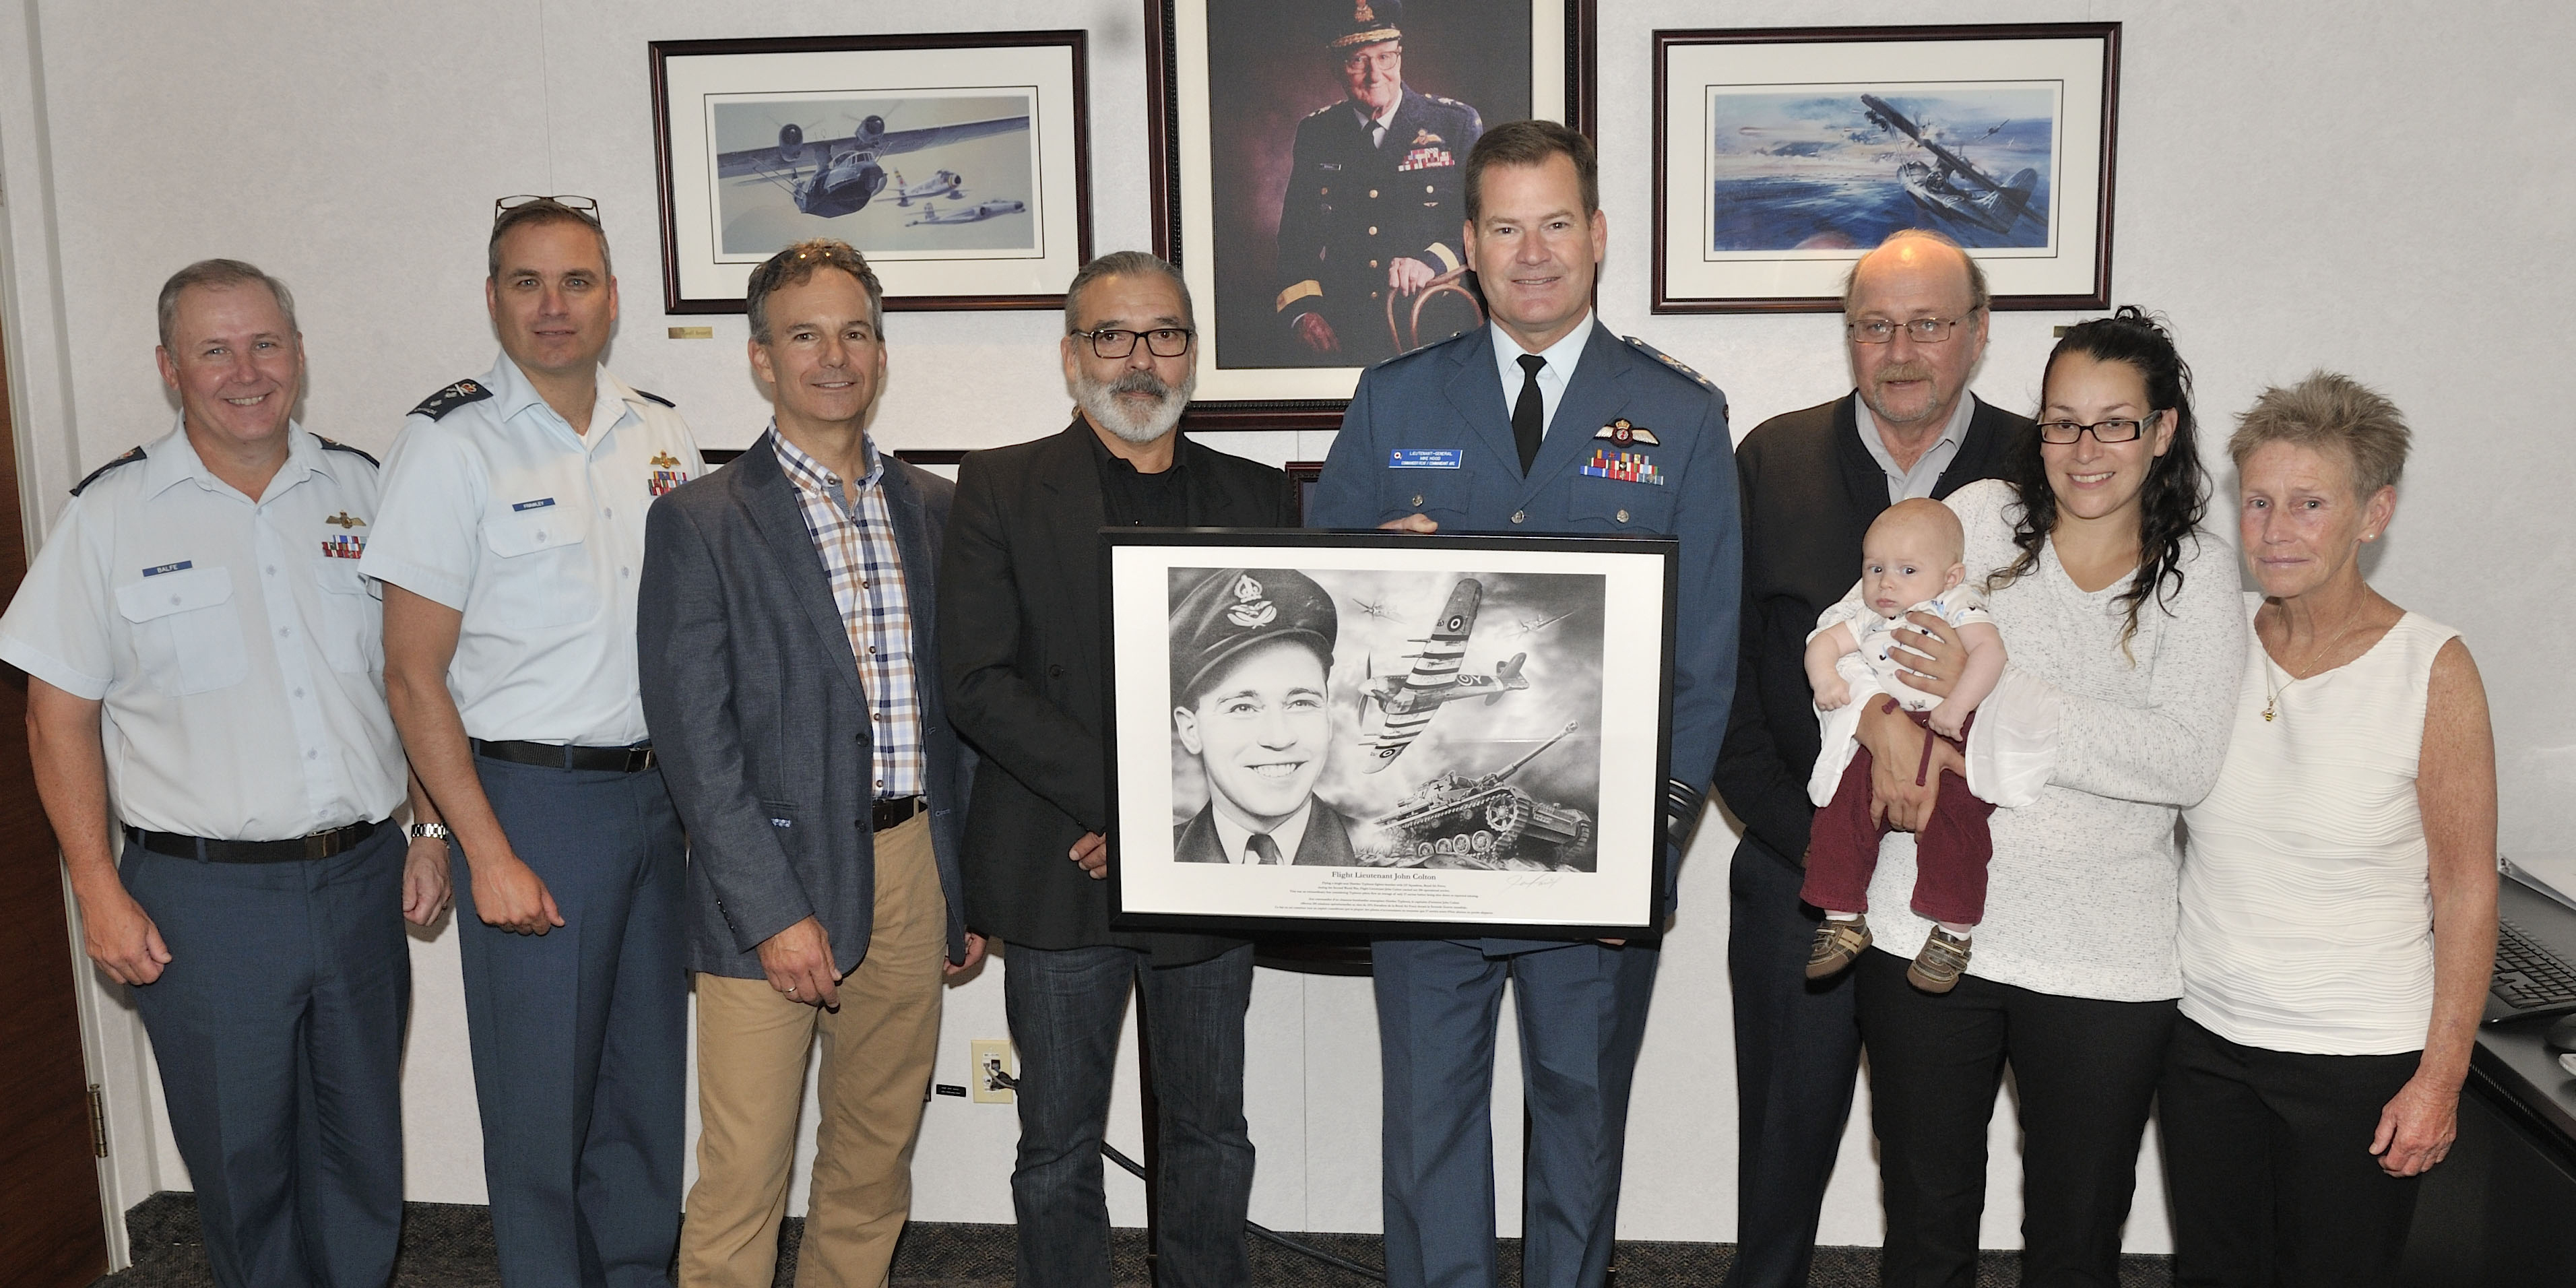 The commander of the Royal Canadian Air Force accepted the print of a portrait of Flight Lieutenant John Colton from the artist and the Colton family on October 5, 2017. From left to right: Brigadier-General Todd Balfe, Special advisor fighter capability; Major-General Blaise Frawley, deputy commander of the RCAF; Major (retired) Francis Mercier, artist Jean Lacroix, RCAF commander Lieutenant-General Mike Hood, and members of the Colton family: John, Jr., Brian (aged three months), Stephanie and Nancy. PHOTO: Corporal Vic Lefrançois, FA01-2017-0011-01